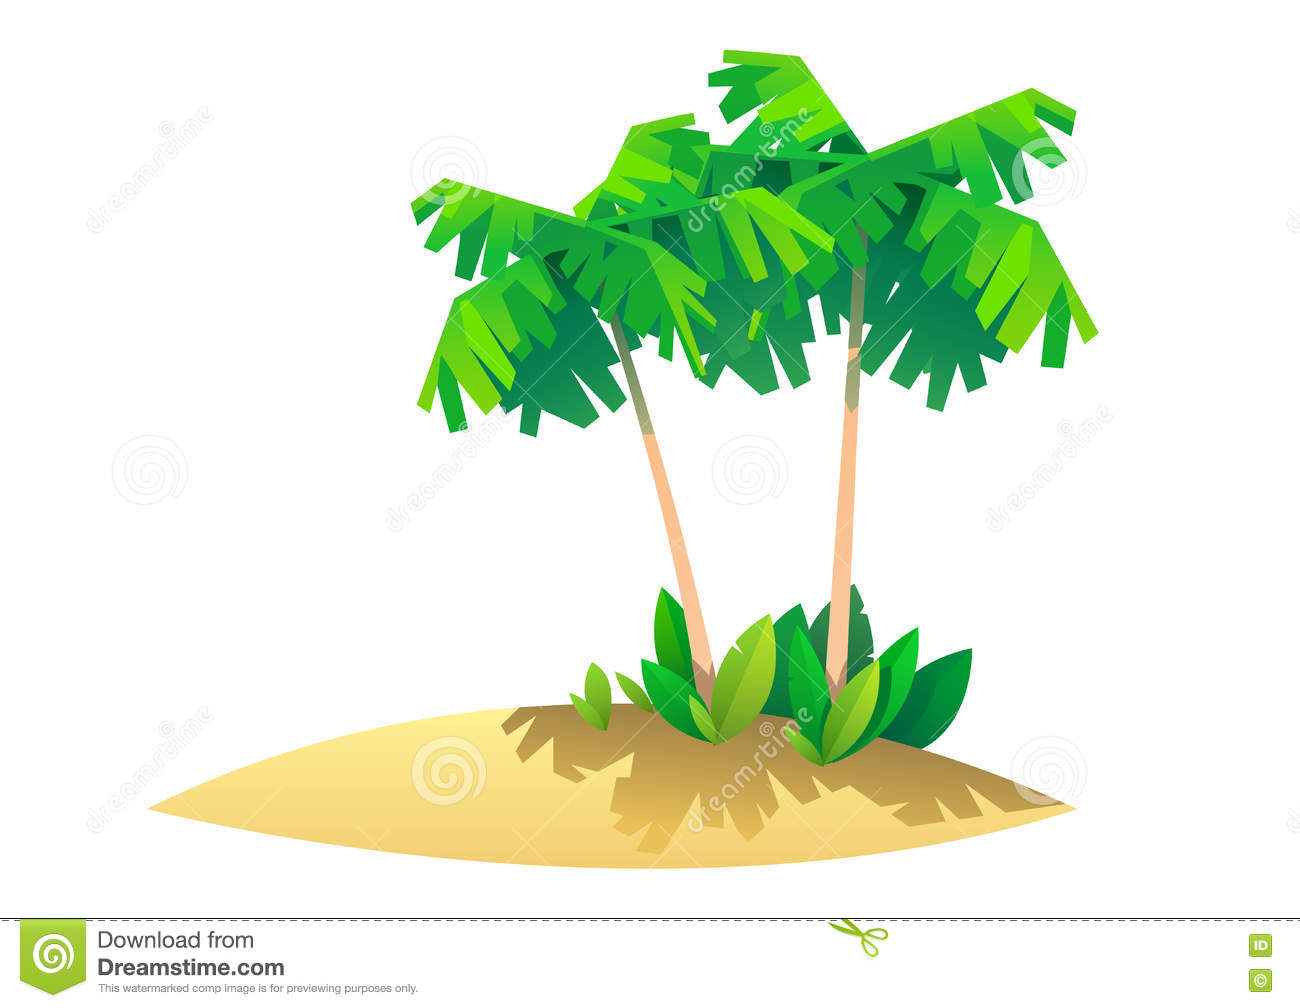 Tropical Island With Palms, Illustration Of Paradise Stock Vector.